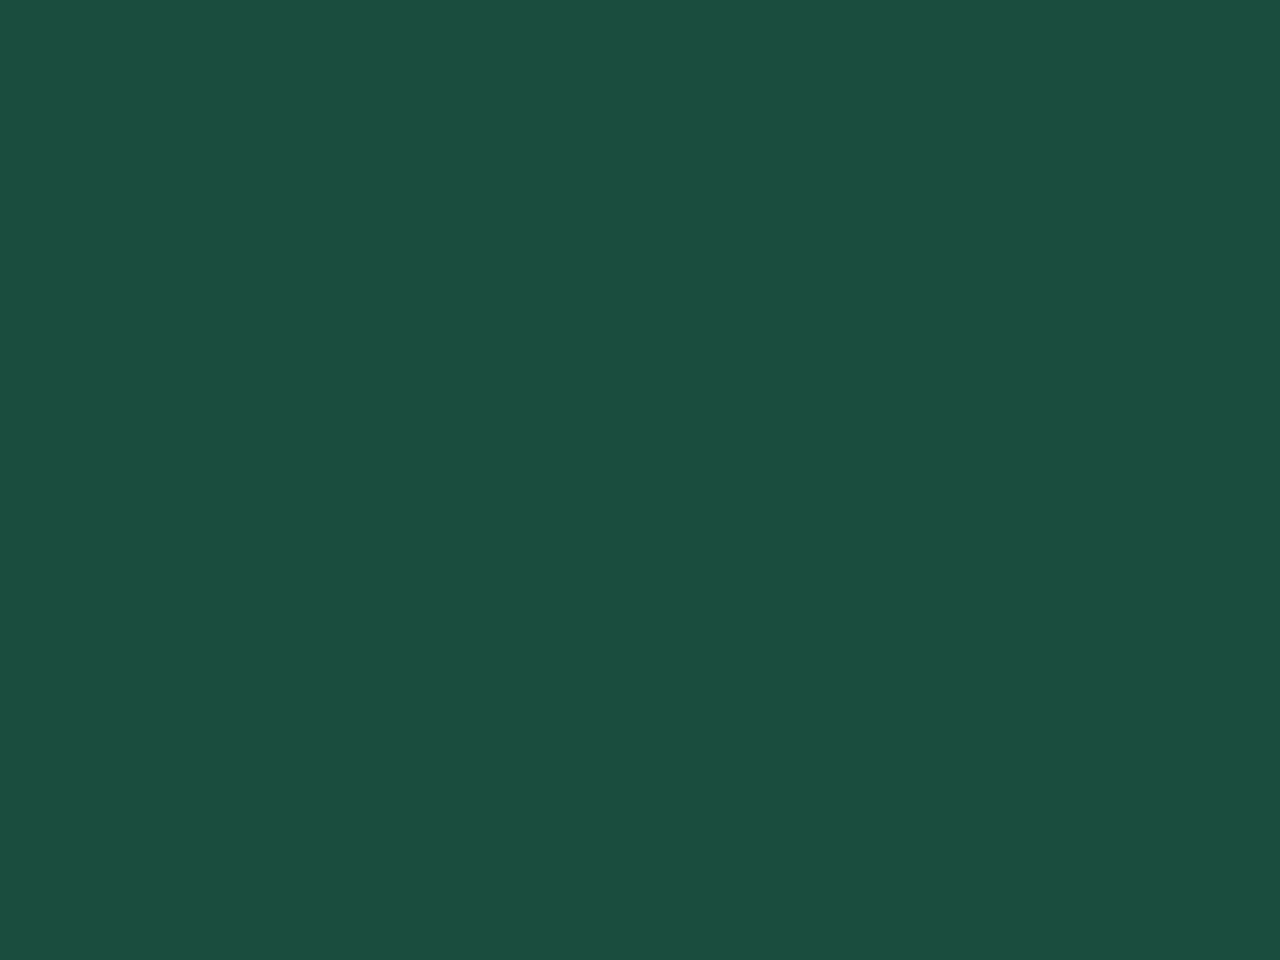 1280x960 Brunswick Green Solid Color Background